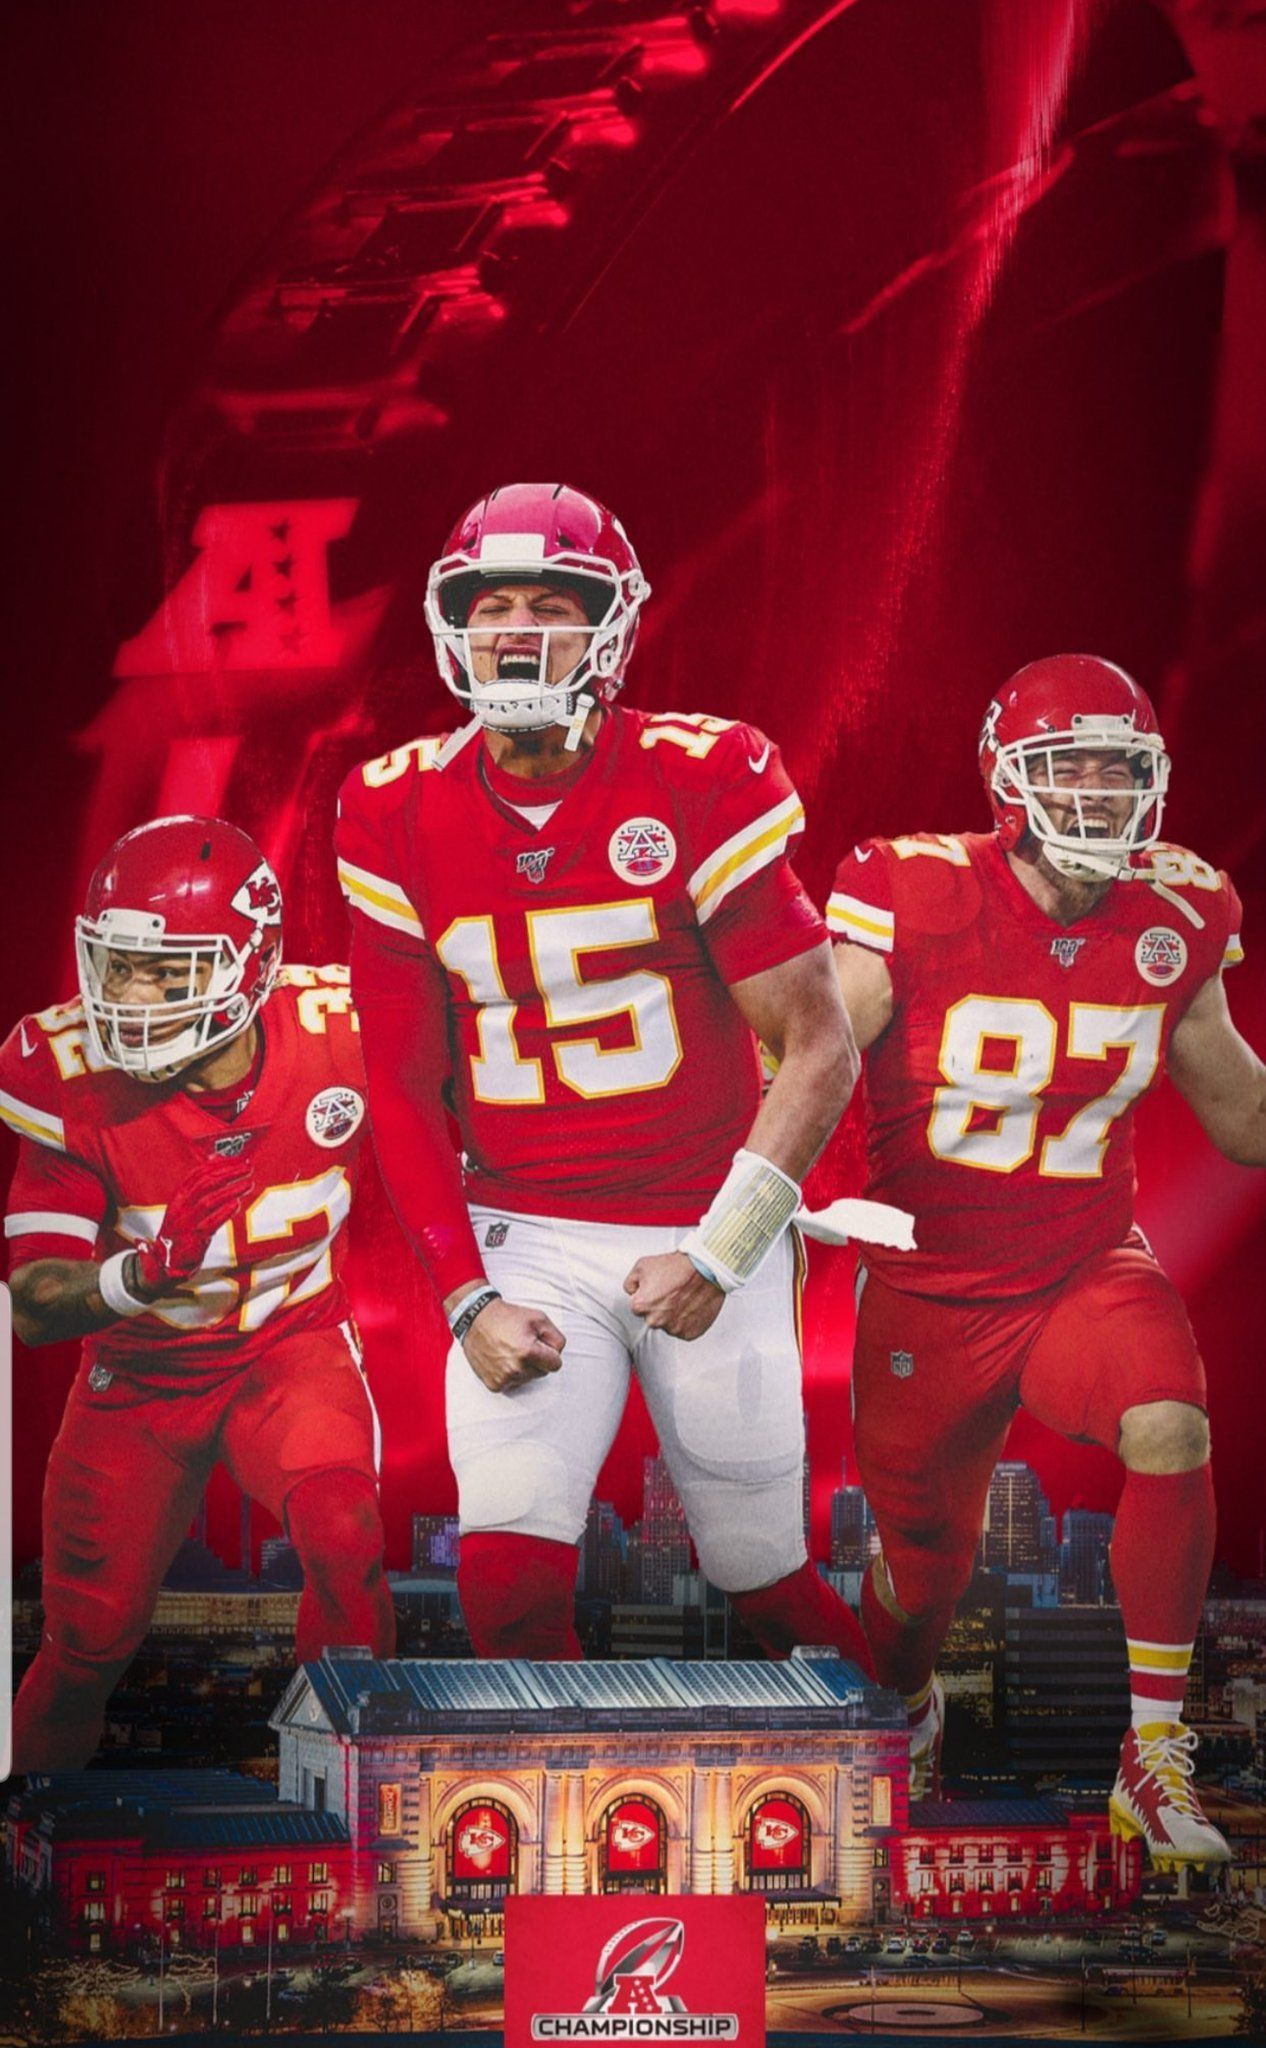 James Beck On Twitter In 2020 Kansas City Chiefs Kansas City Chiefs Football Chiefs Football